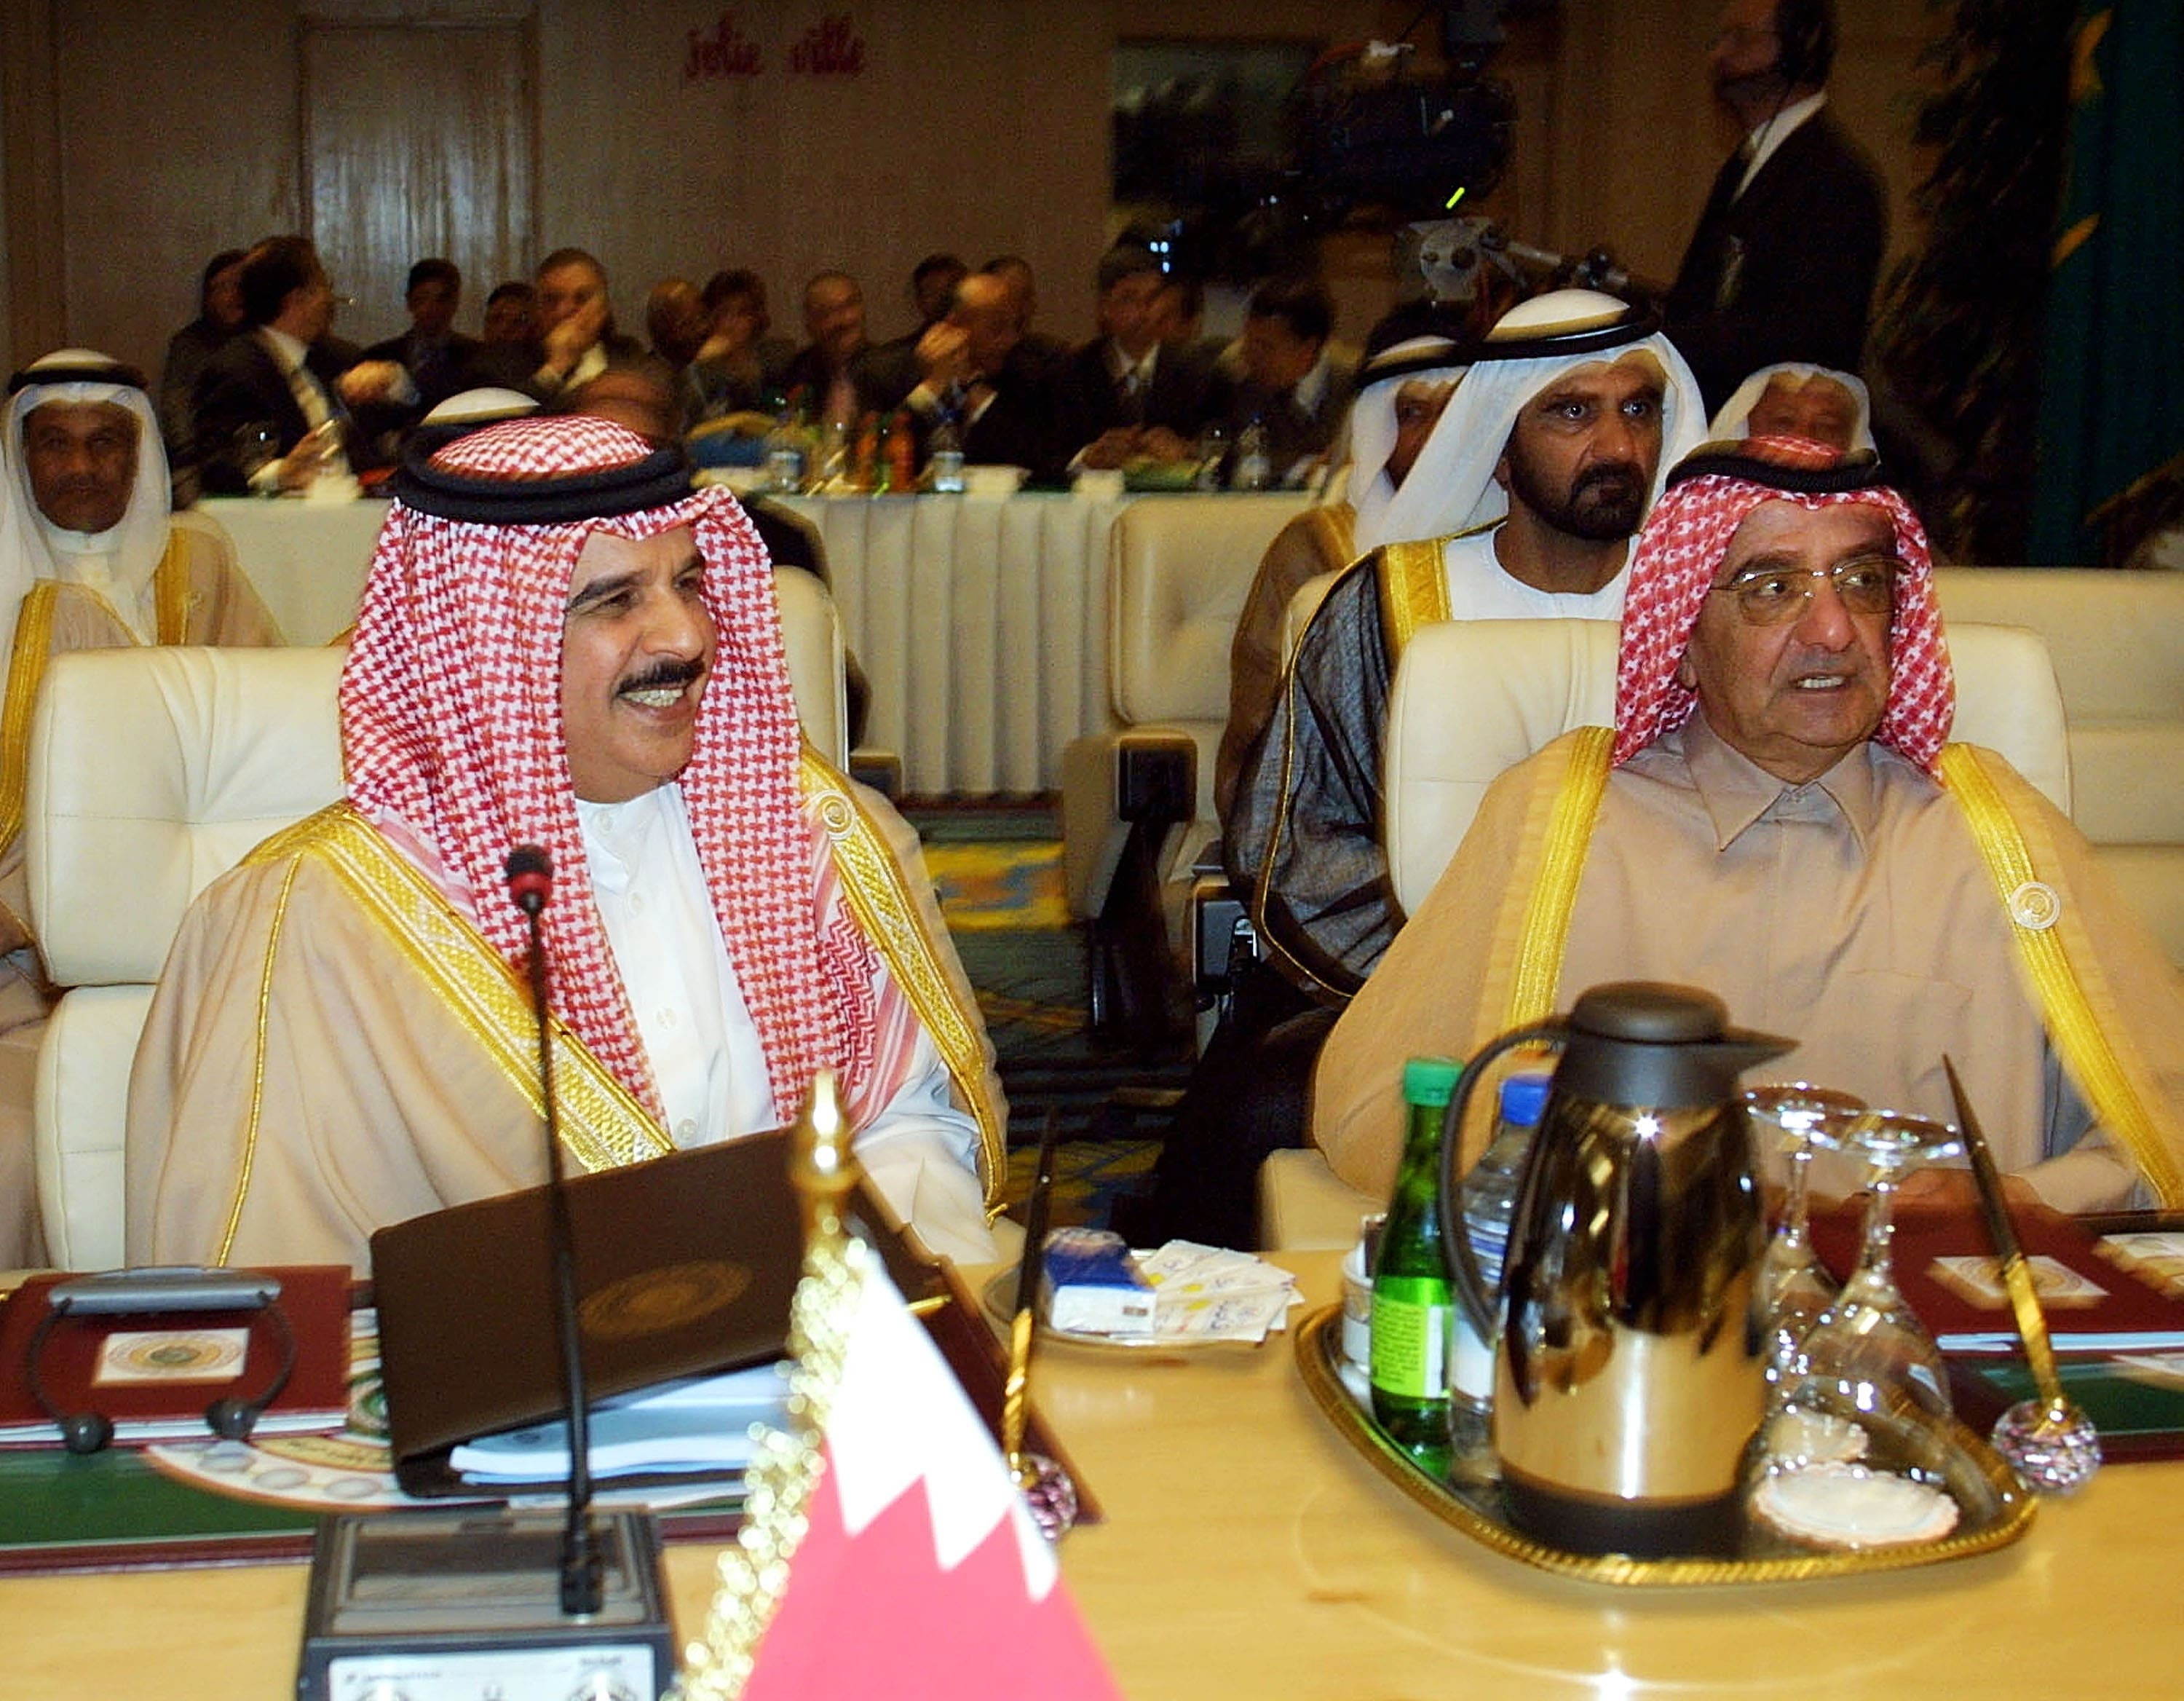 Is the GCC trying its trying to undermine the Arab League by adding Egypt to its target membership?